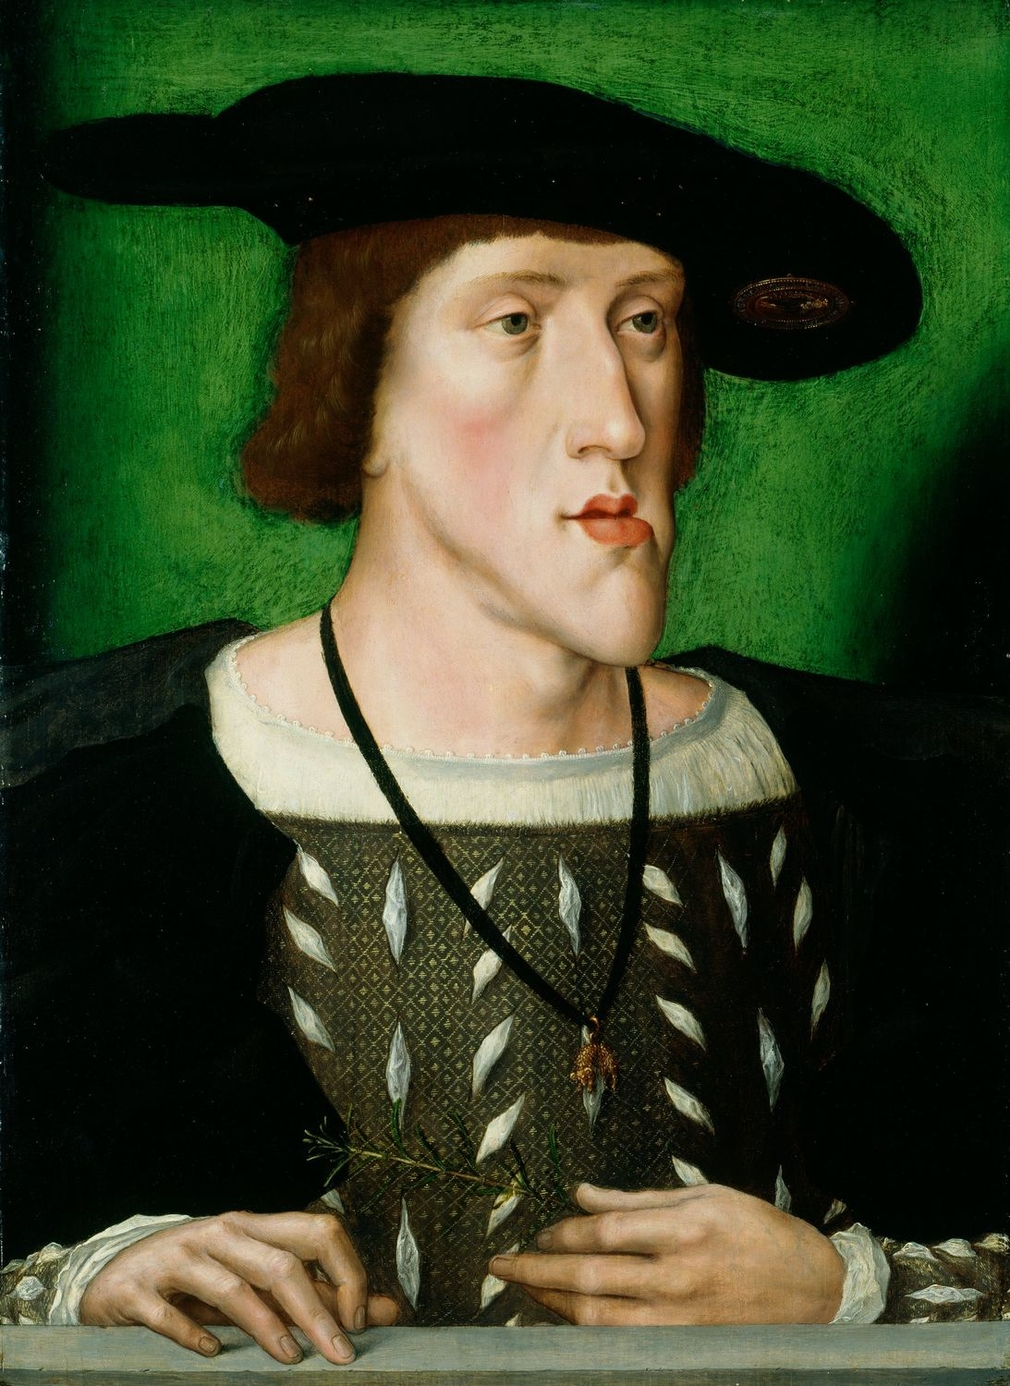 The son of Philip the Handsome and Joanna the Mad, Charles V was born in Ghent and raised in Mechelen (Malines) by his aunt, Margaret of Austria. At the age of 6 he succeeded his father as ruler of the Low Countries, although Margaret acted as regent unti